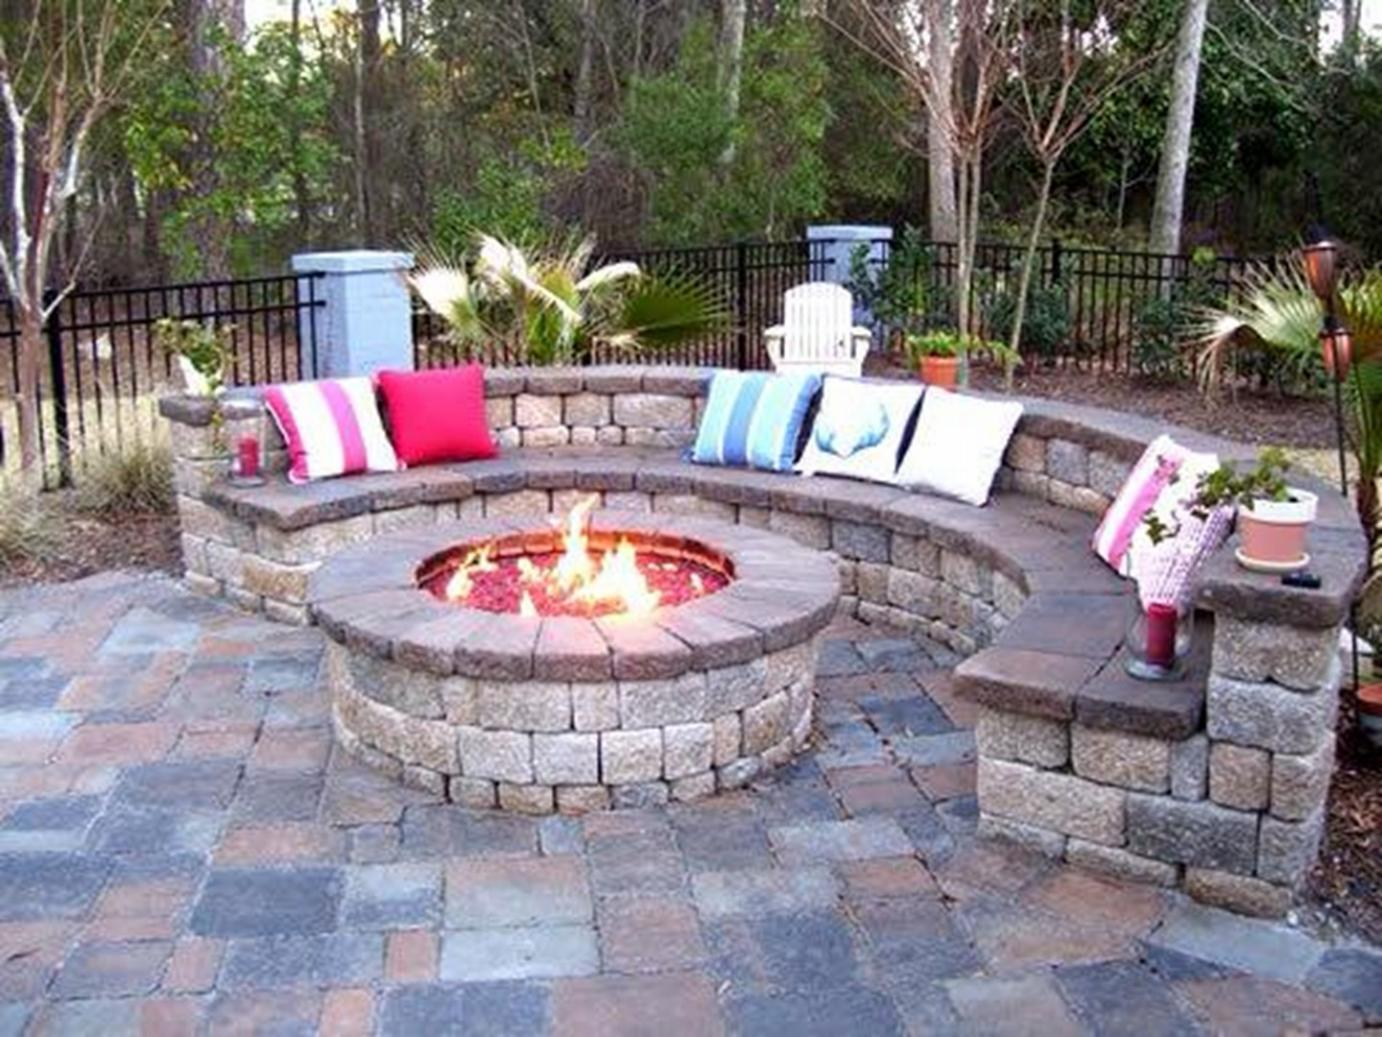 backyard patio designs backyard covered patio designs covered patios are a great way to enjoy the - Fire Pit Ideas Patio